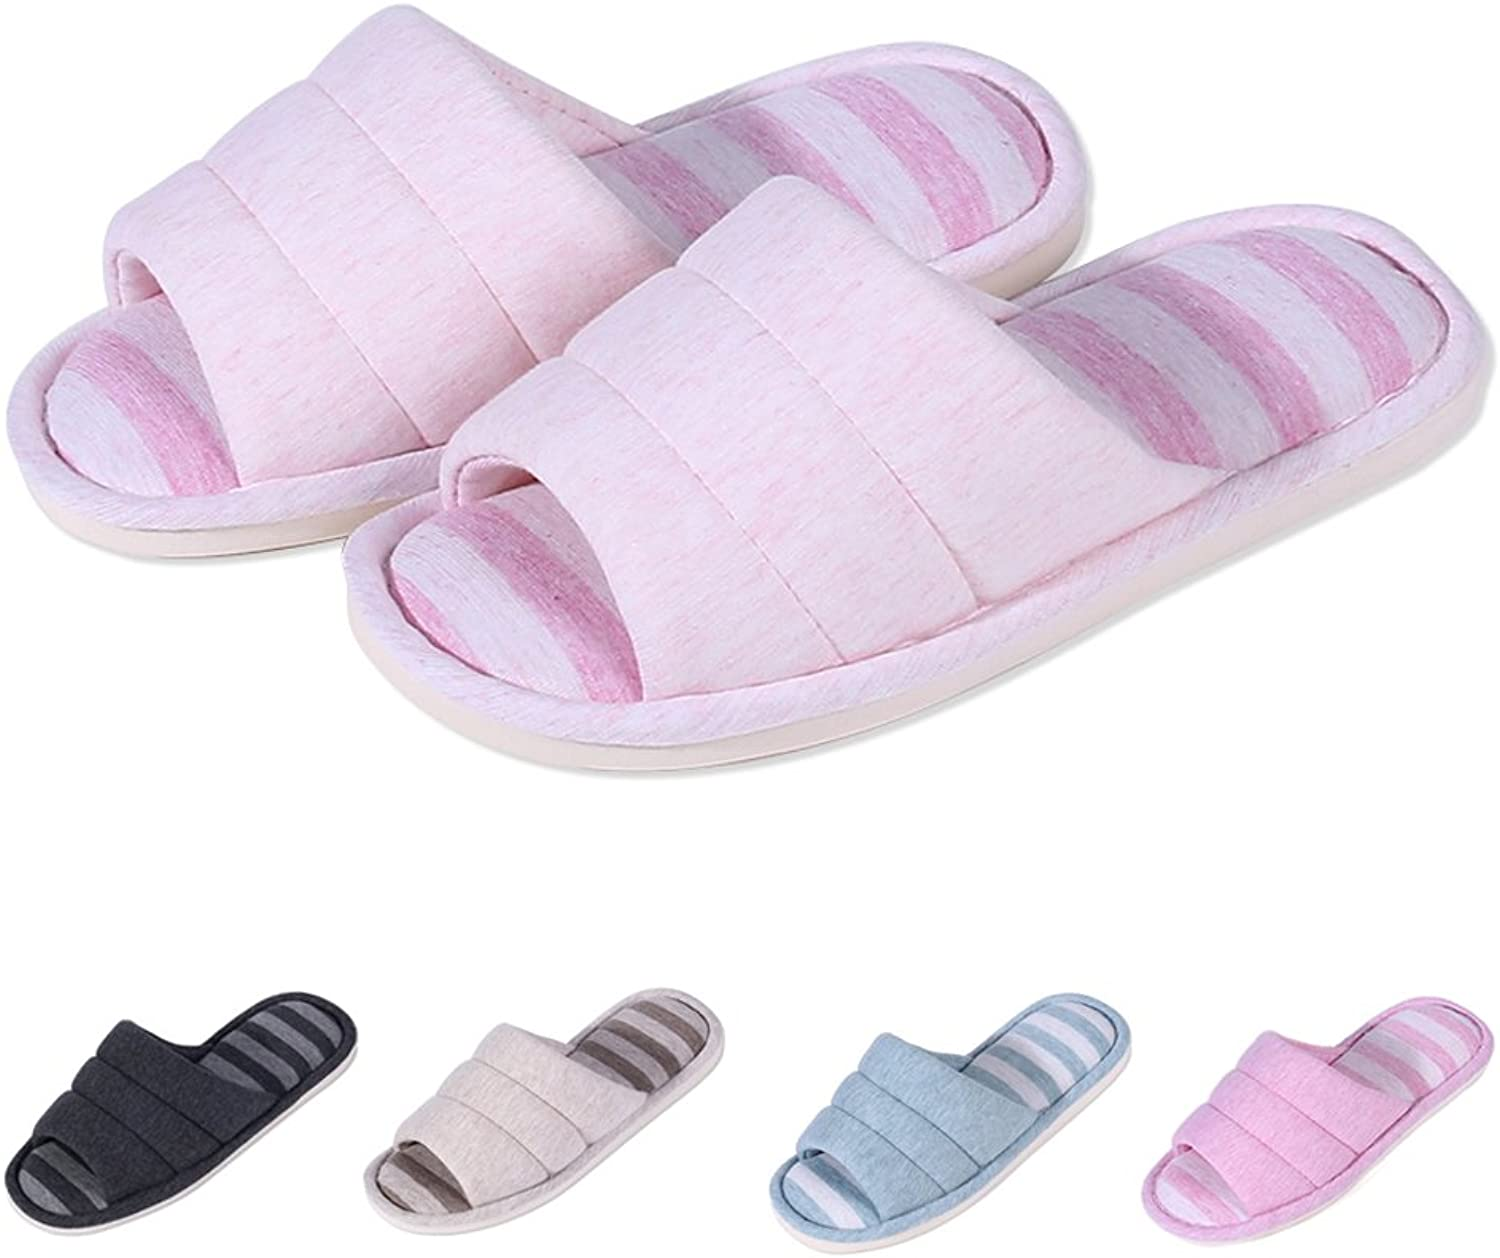 Shevalues Women's Soft Indoor Slippers Open Toe Cotton Memory Foam Slip on Home shoes House Slippers LP-S Light Pink